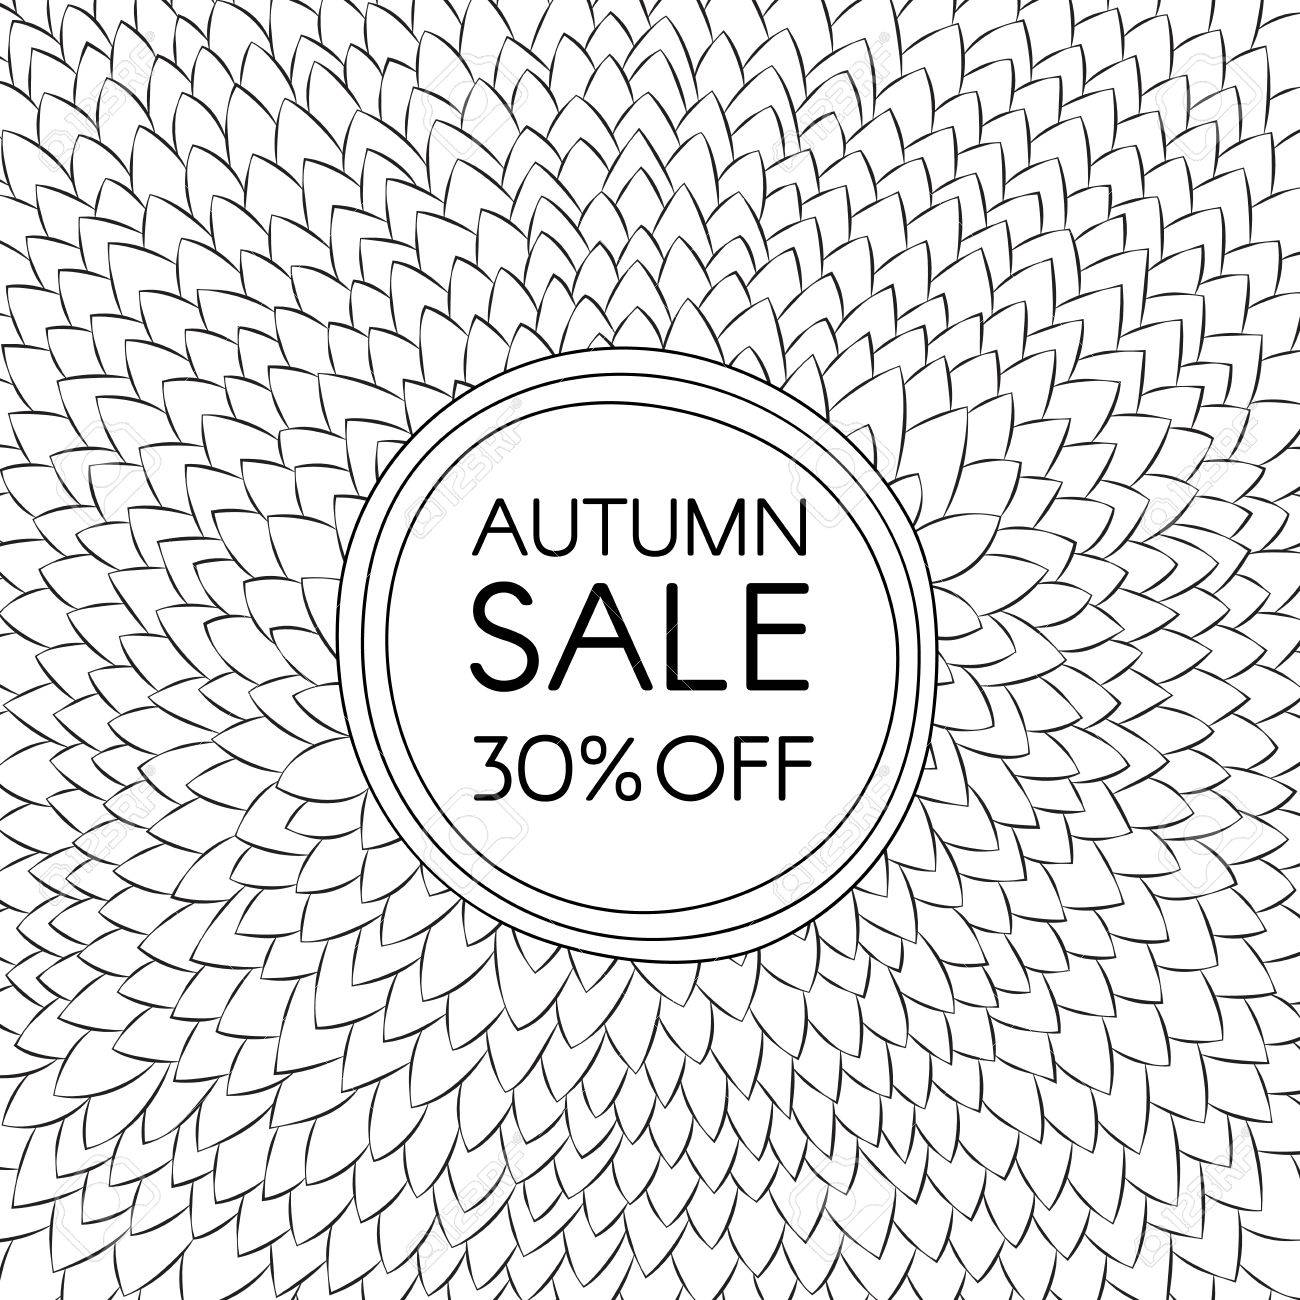 Autumn Sale Background Of A Pile Of Leaves Arranged In Circles Royalty Free Cliparts Vectors And Stock Illustration Image 68886382